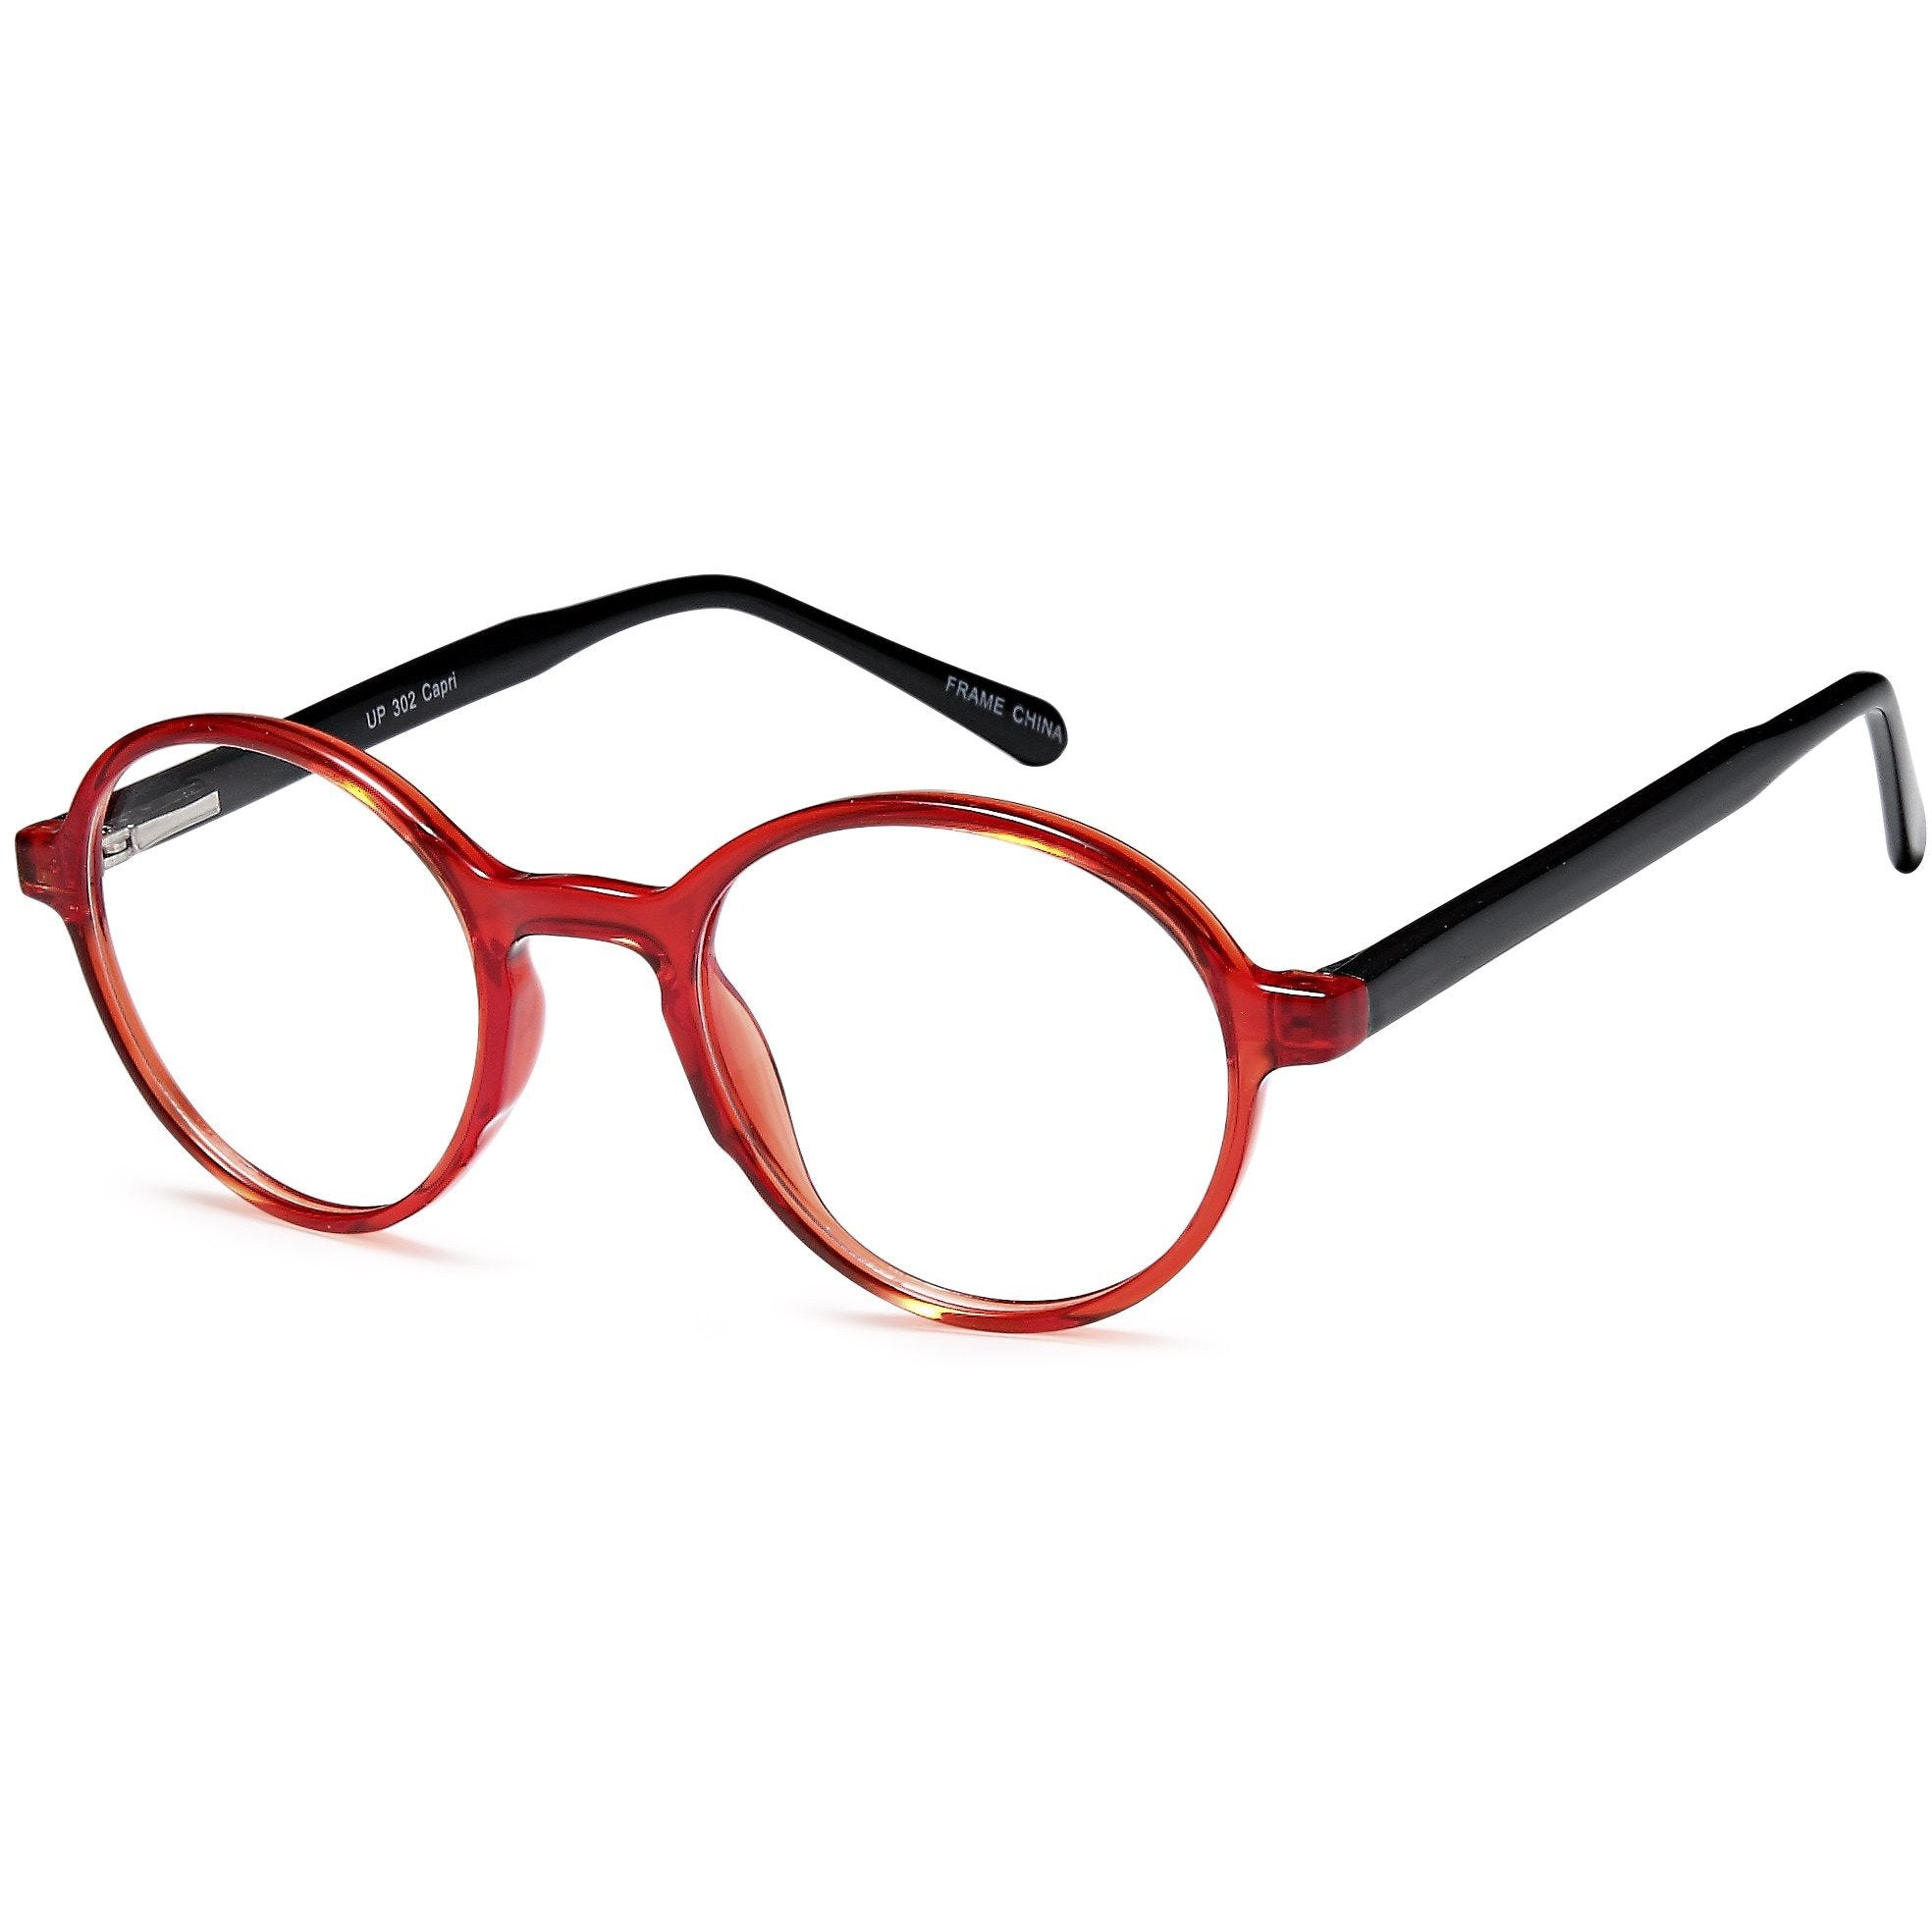 2U Prescription Glasses UP 302 Optical Eyeglasses Frame